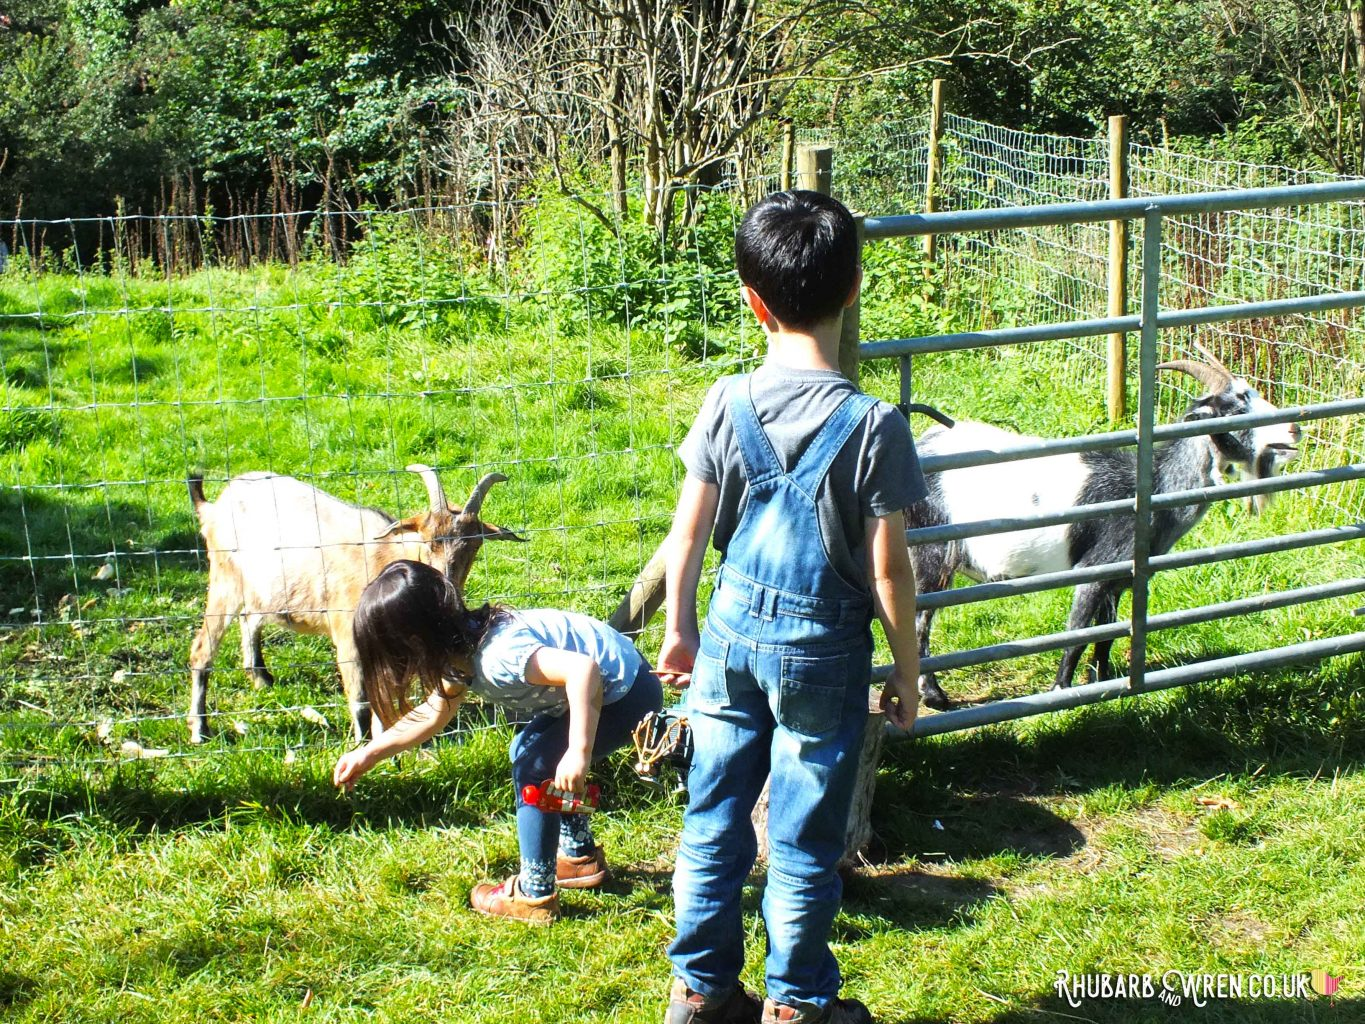 Two children feeding goats at Farrs Meadow campsite, Dorset, UK